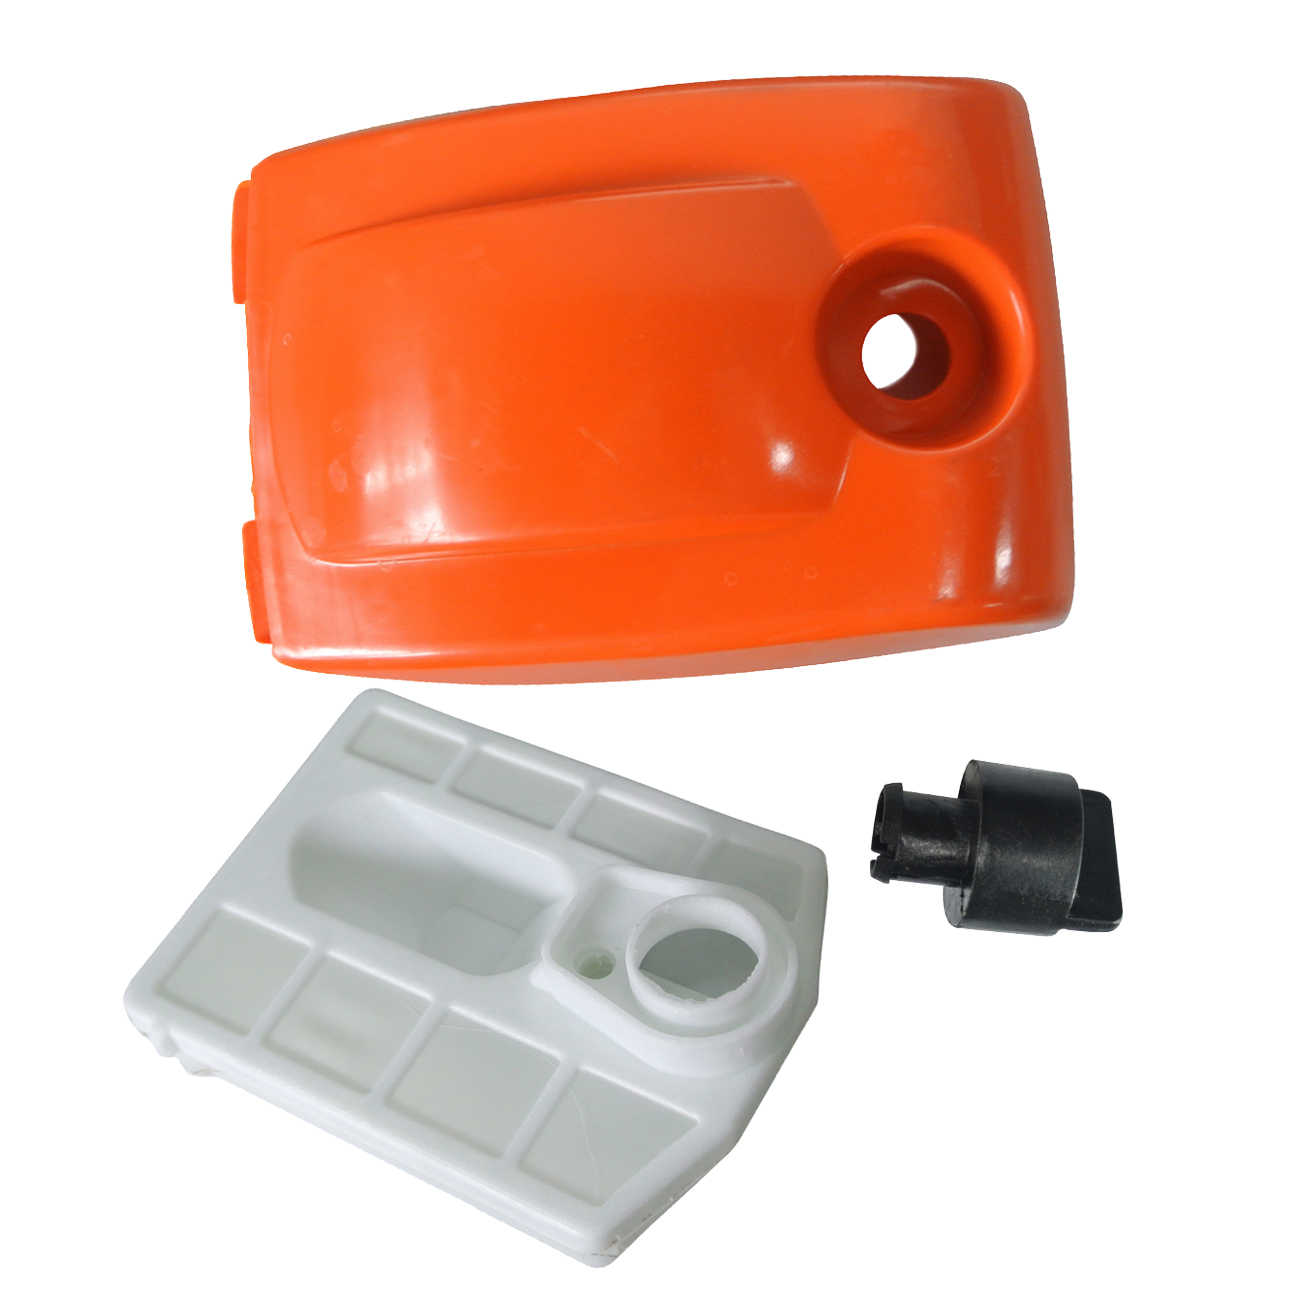 Air Filter Cleaner Cover Luchtfilter Voor Chinese 4500 5200 45cc 52cc Kettingzaag